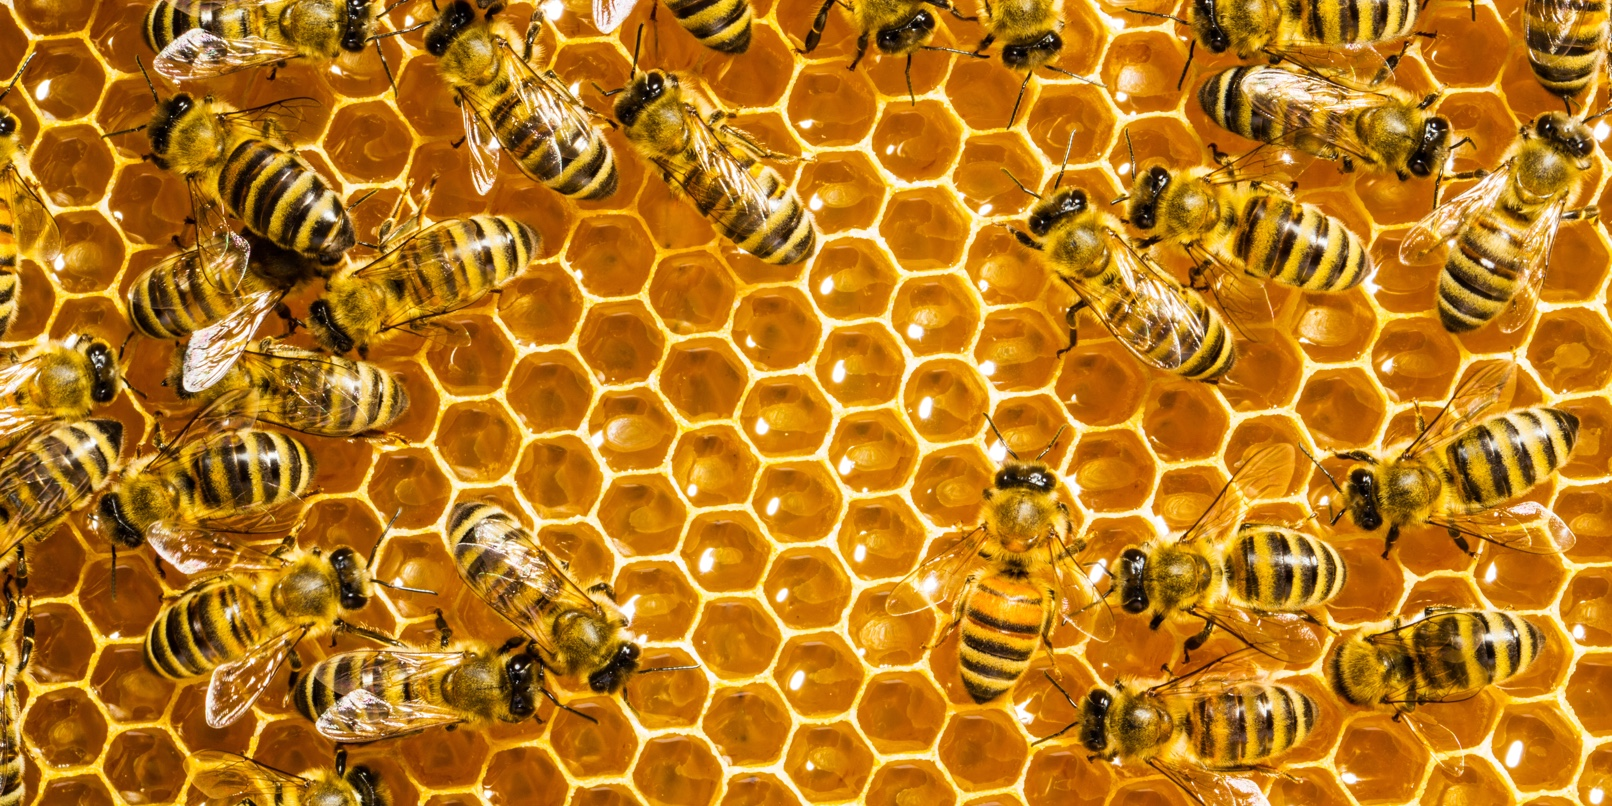 lots-of-bees-for-website.jpg